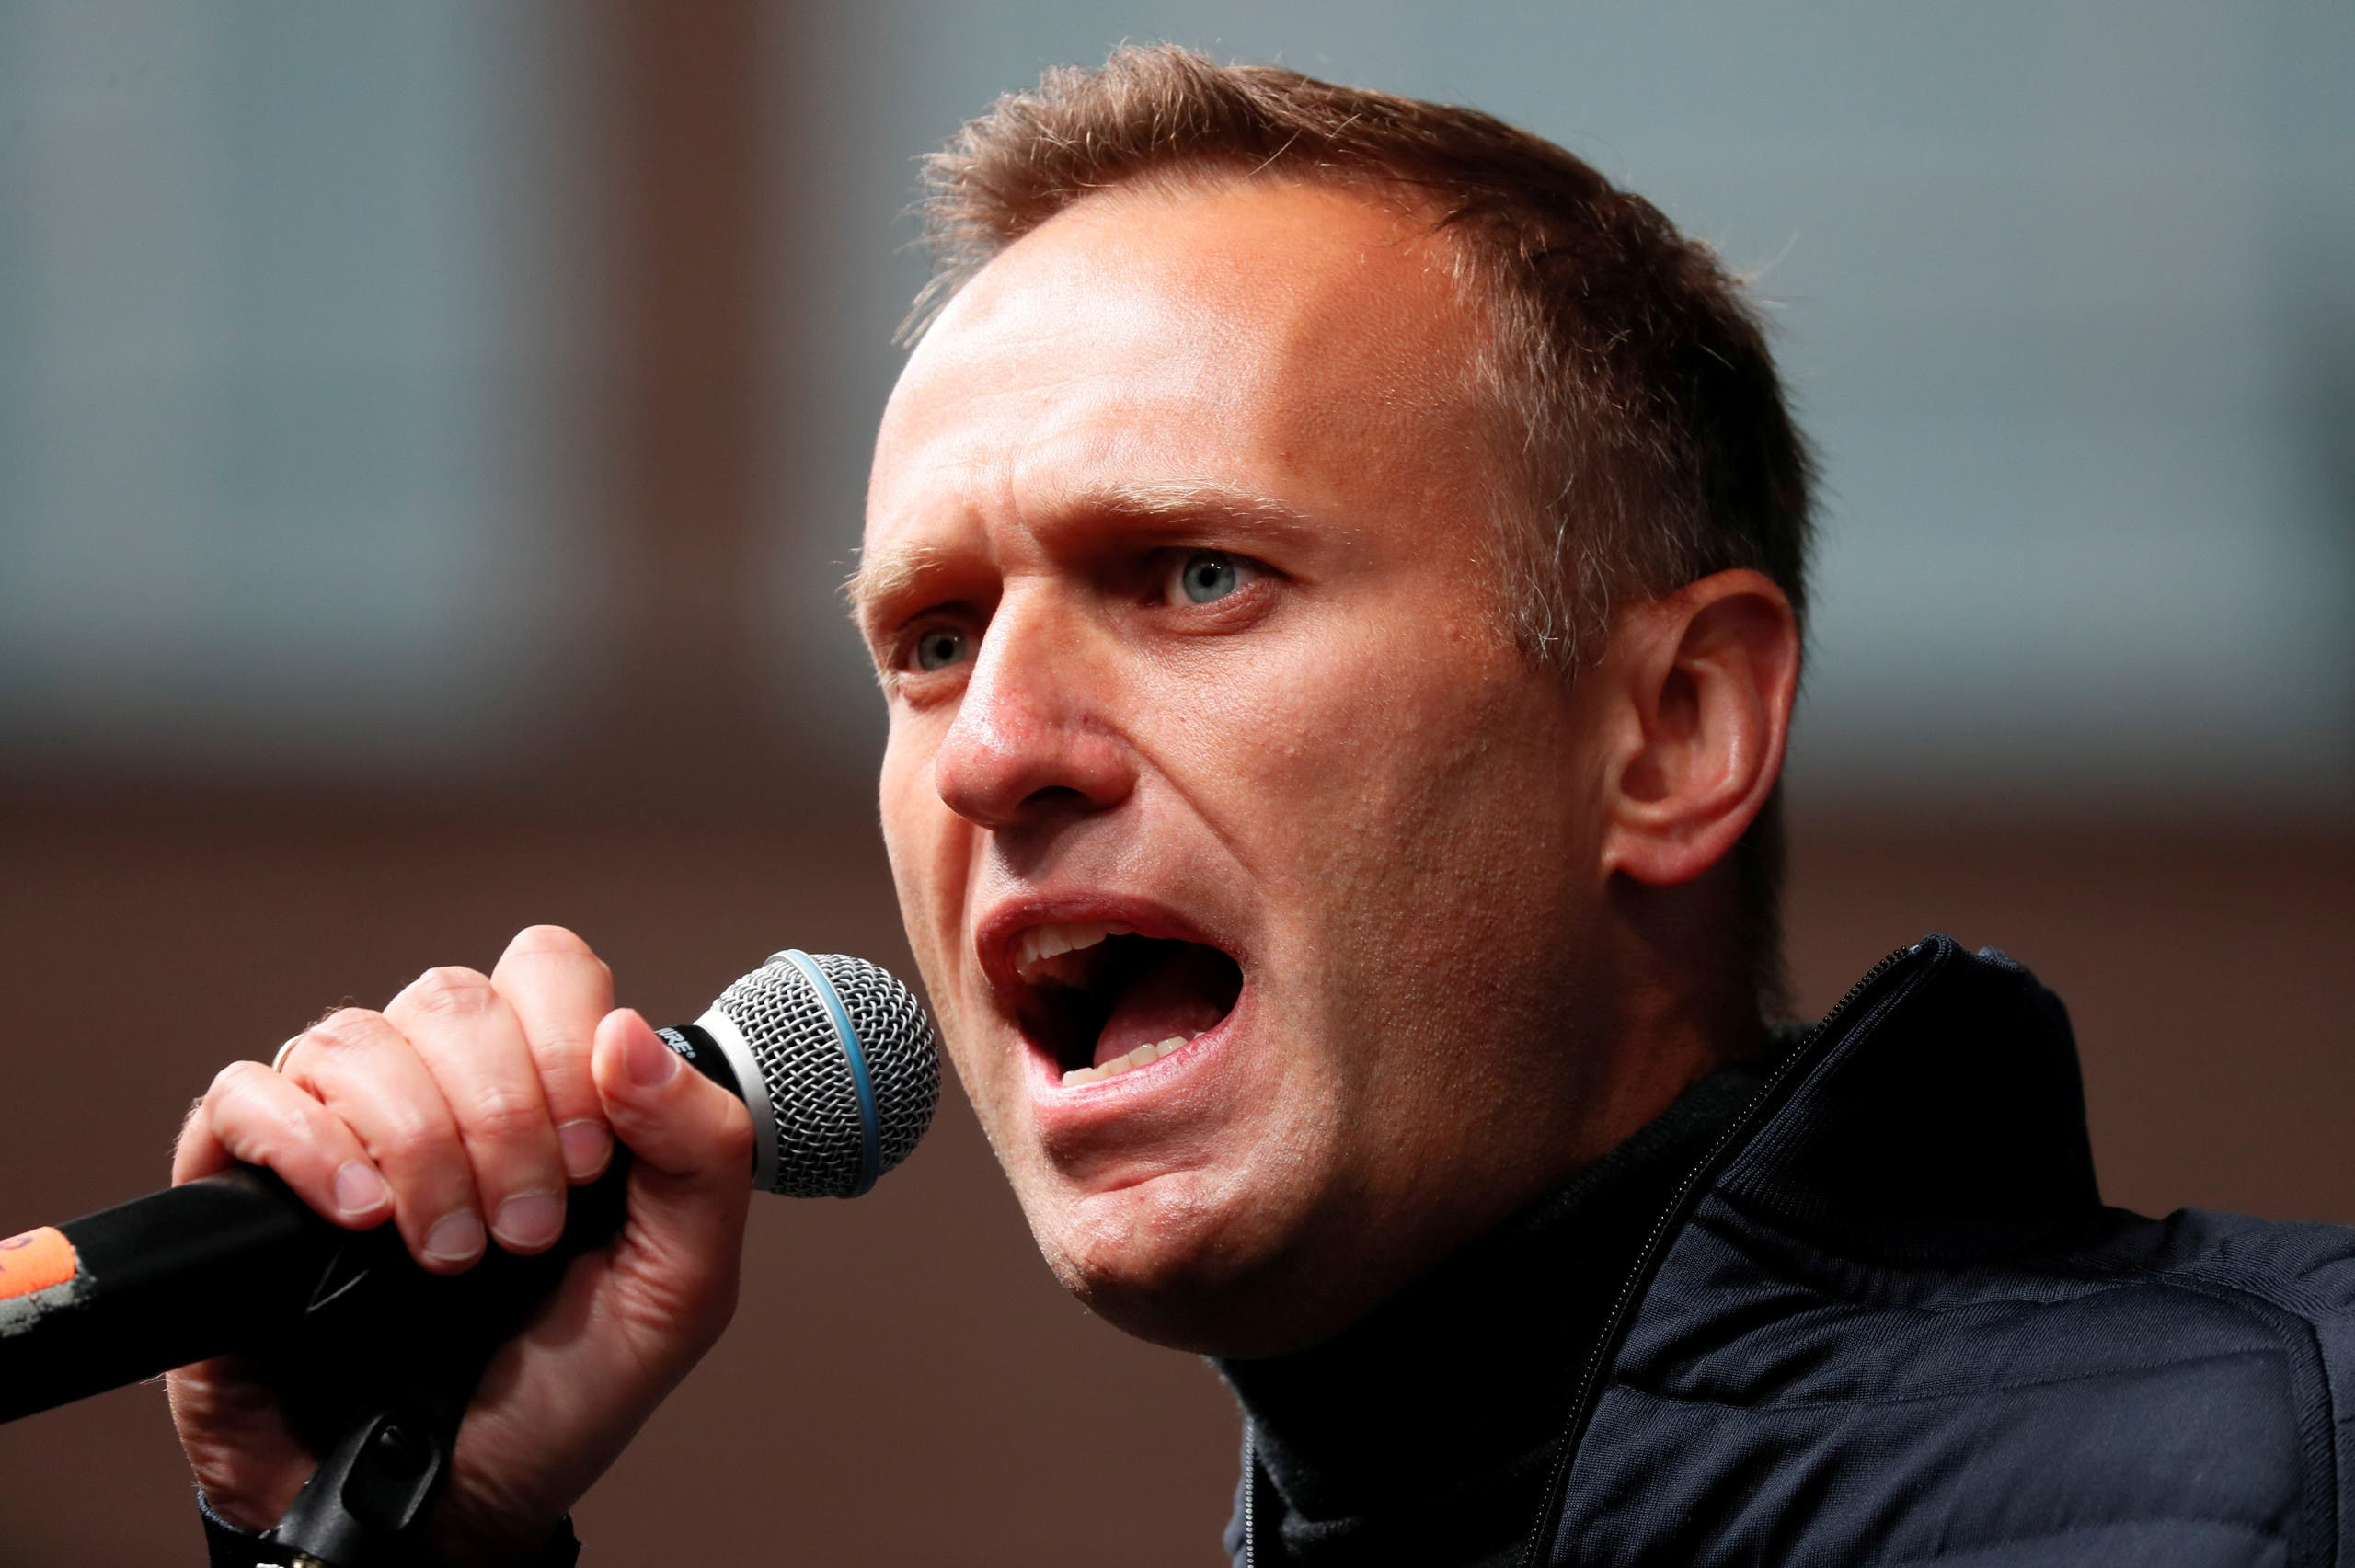 Russian opposition leader Alexei Navalny delivers a speech during a rally to demand the release of jailed protesters, who were detained during opposition demonstrations for fair elections, in Moscow, Russia September 29, 2019. (File photo: Reuters)